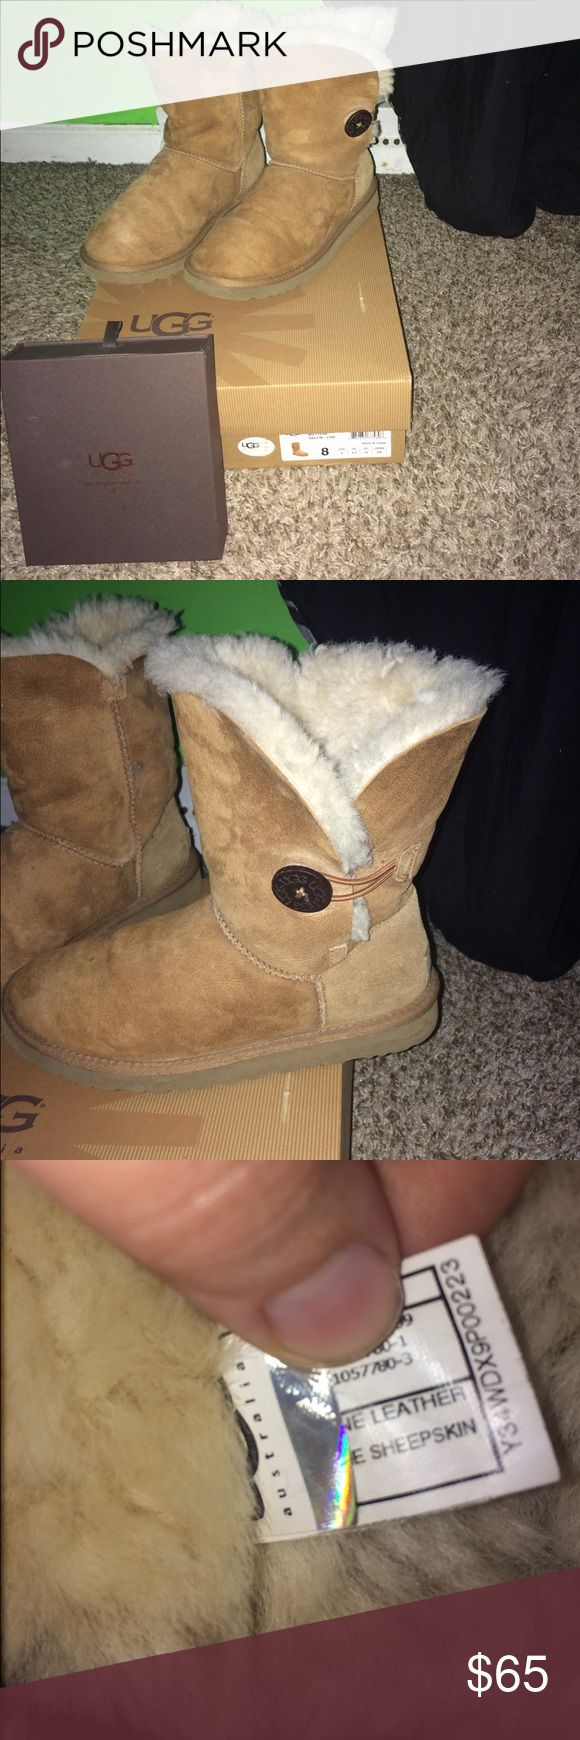 Bailey button UGG boots and UGG care kit They have been used and do have creases in them due to wear but they are in good condition!! Also comes with a care kit that has also been used and my dog got ahold of the brush handle but it all still works greatly!! They are the chestnut color and they have the original box!! UGG Shoes Winter & Rain Boots